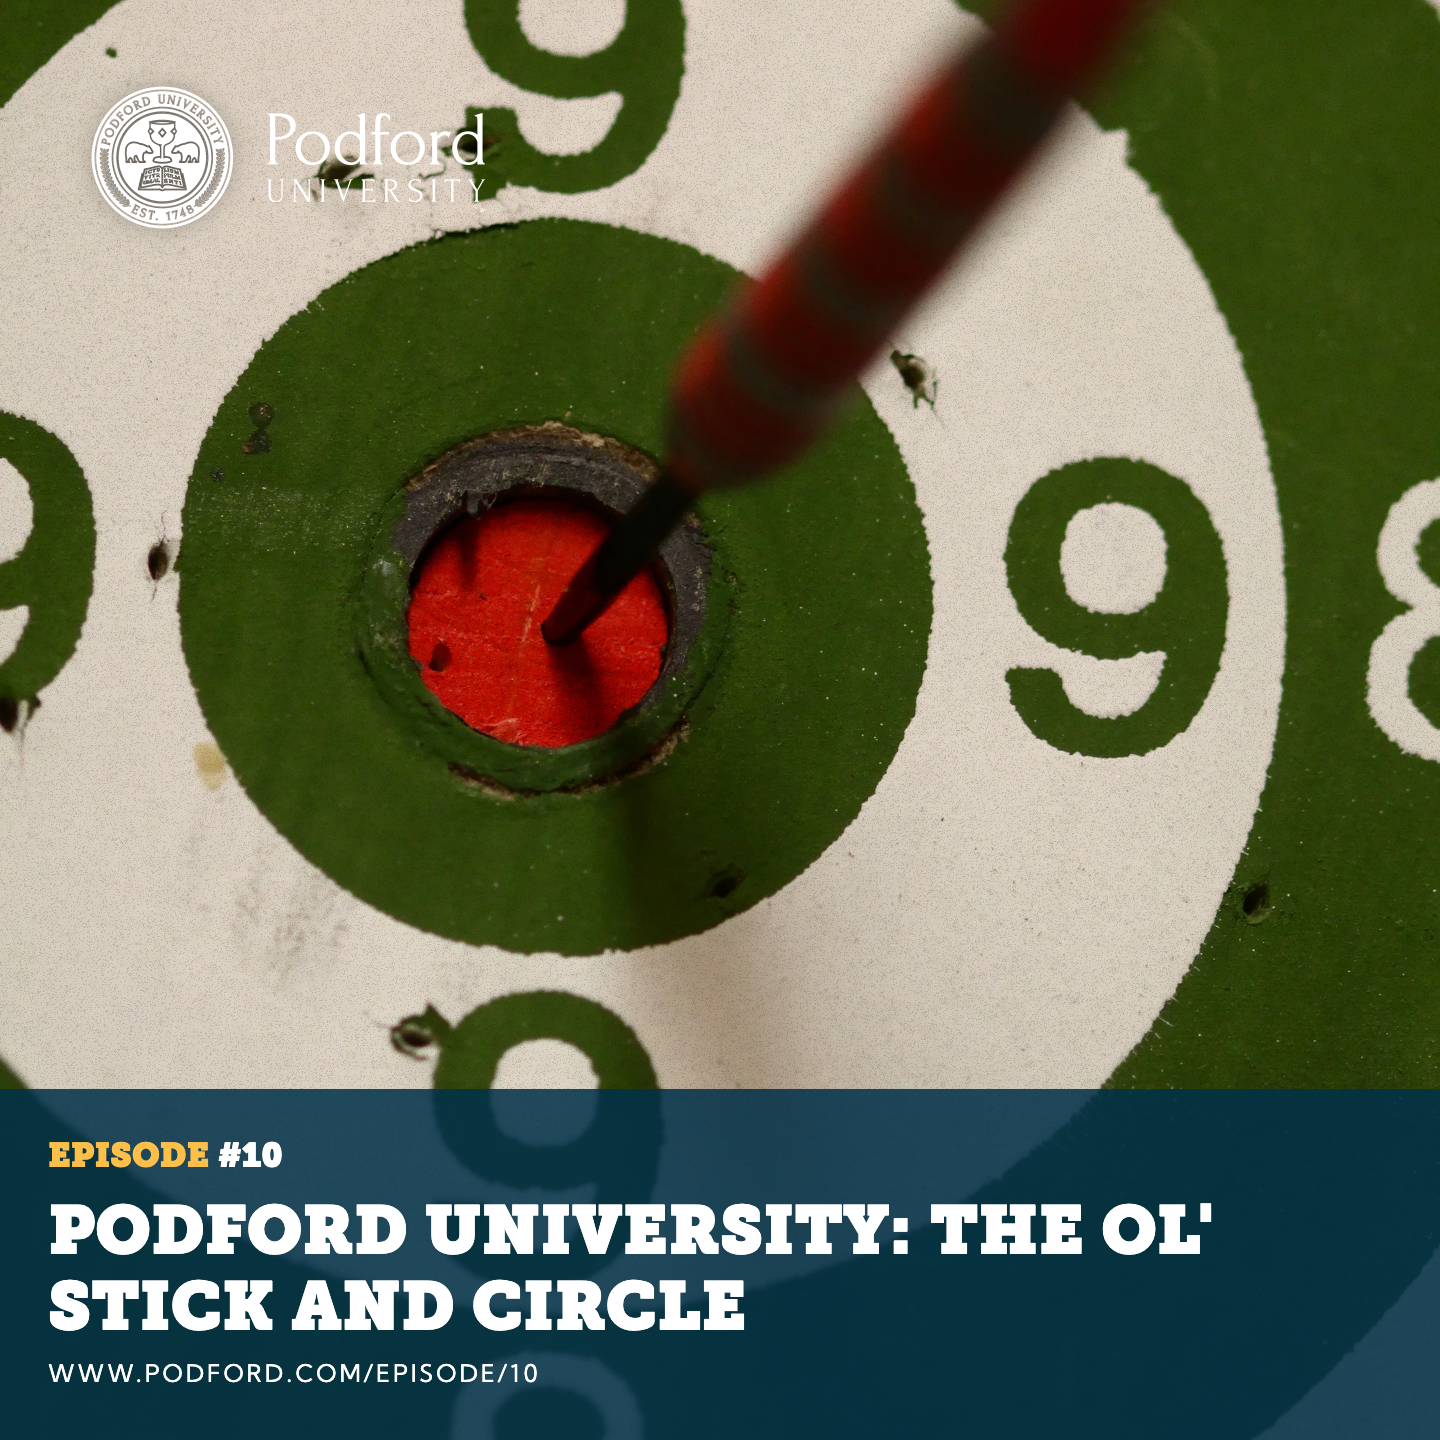 Podford University: The Ol' Stick And Circle